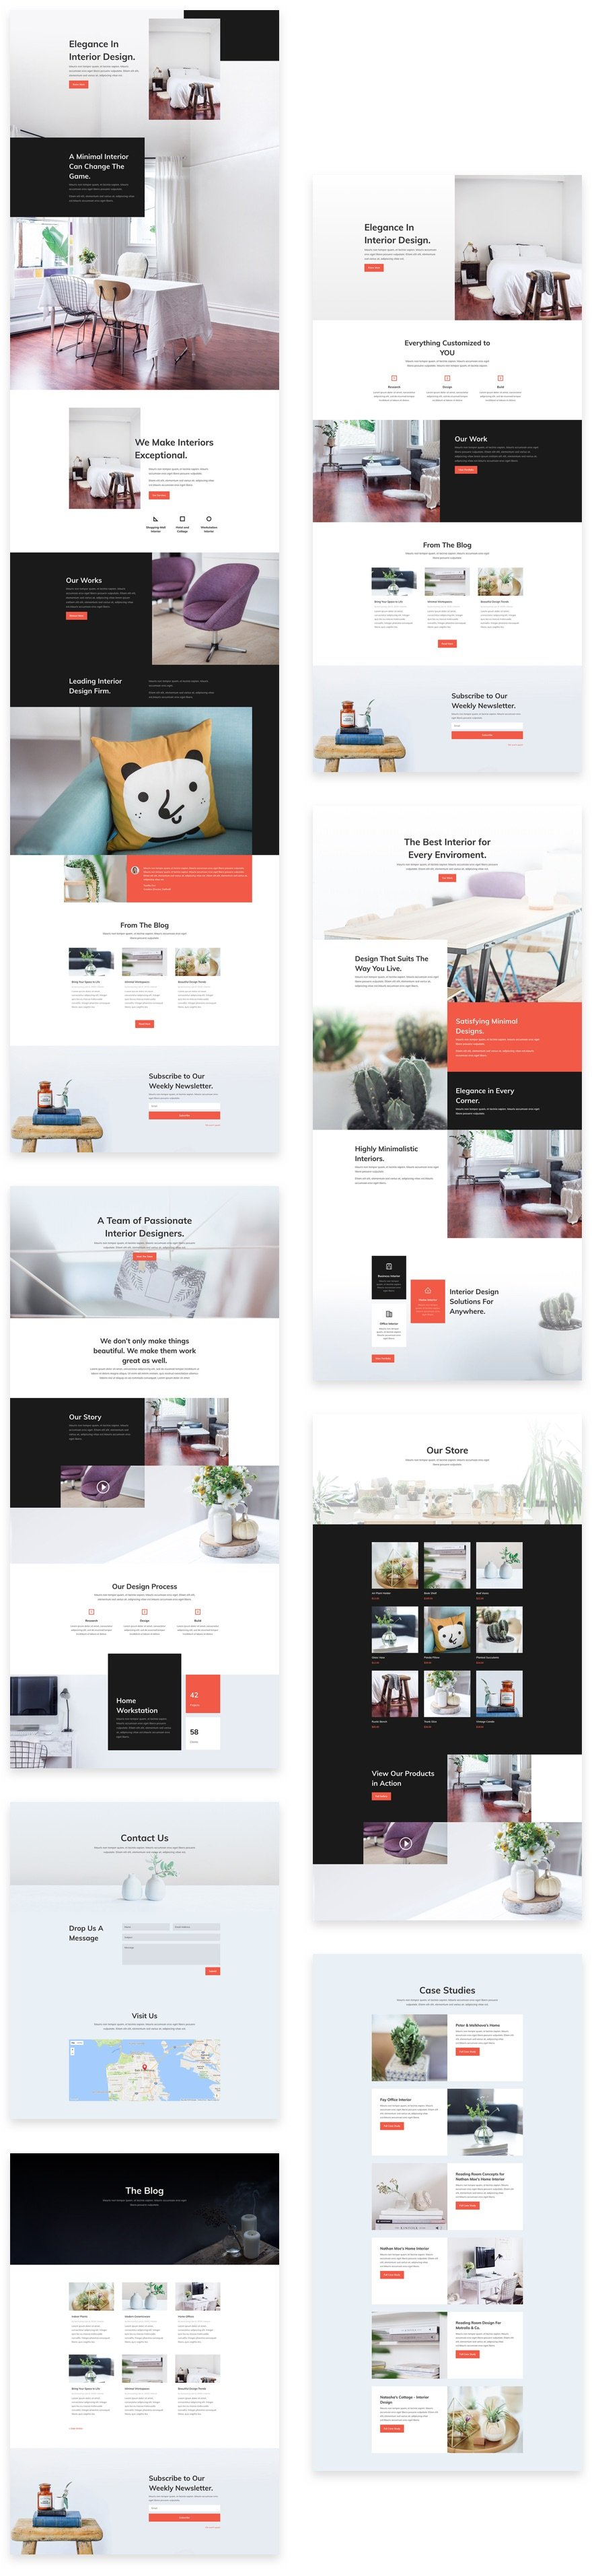 Download A Free Refreshing Interior Design Layout Pack For Divi Elegant Themes Blog